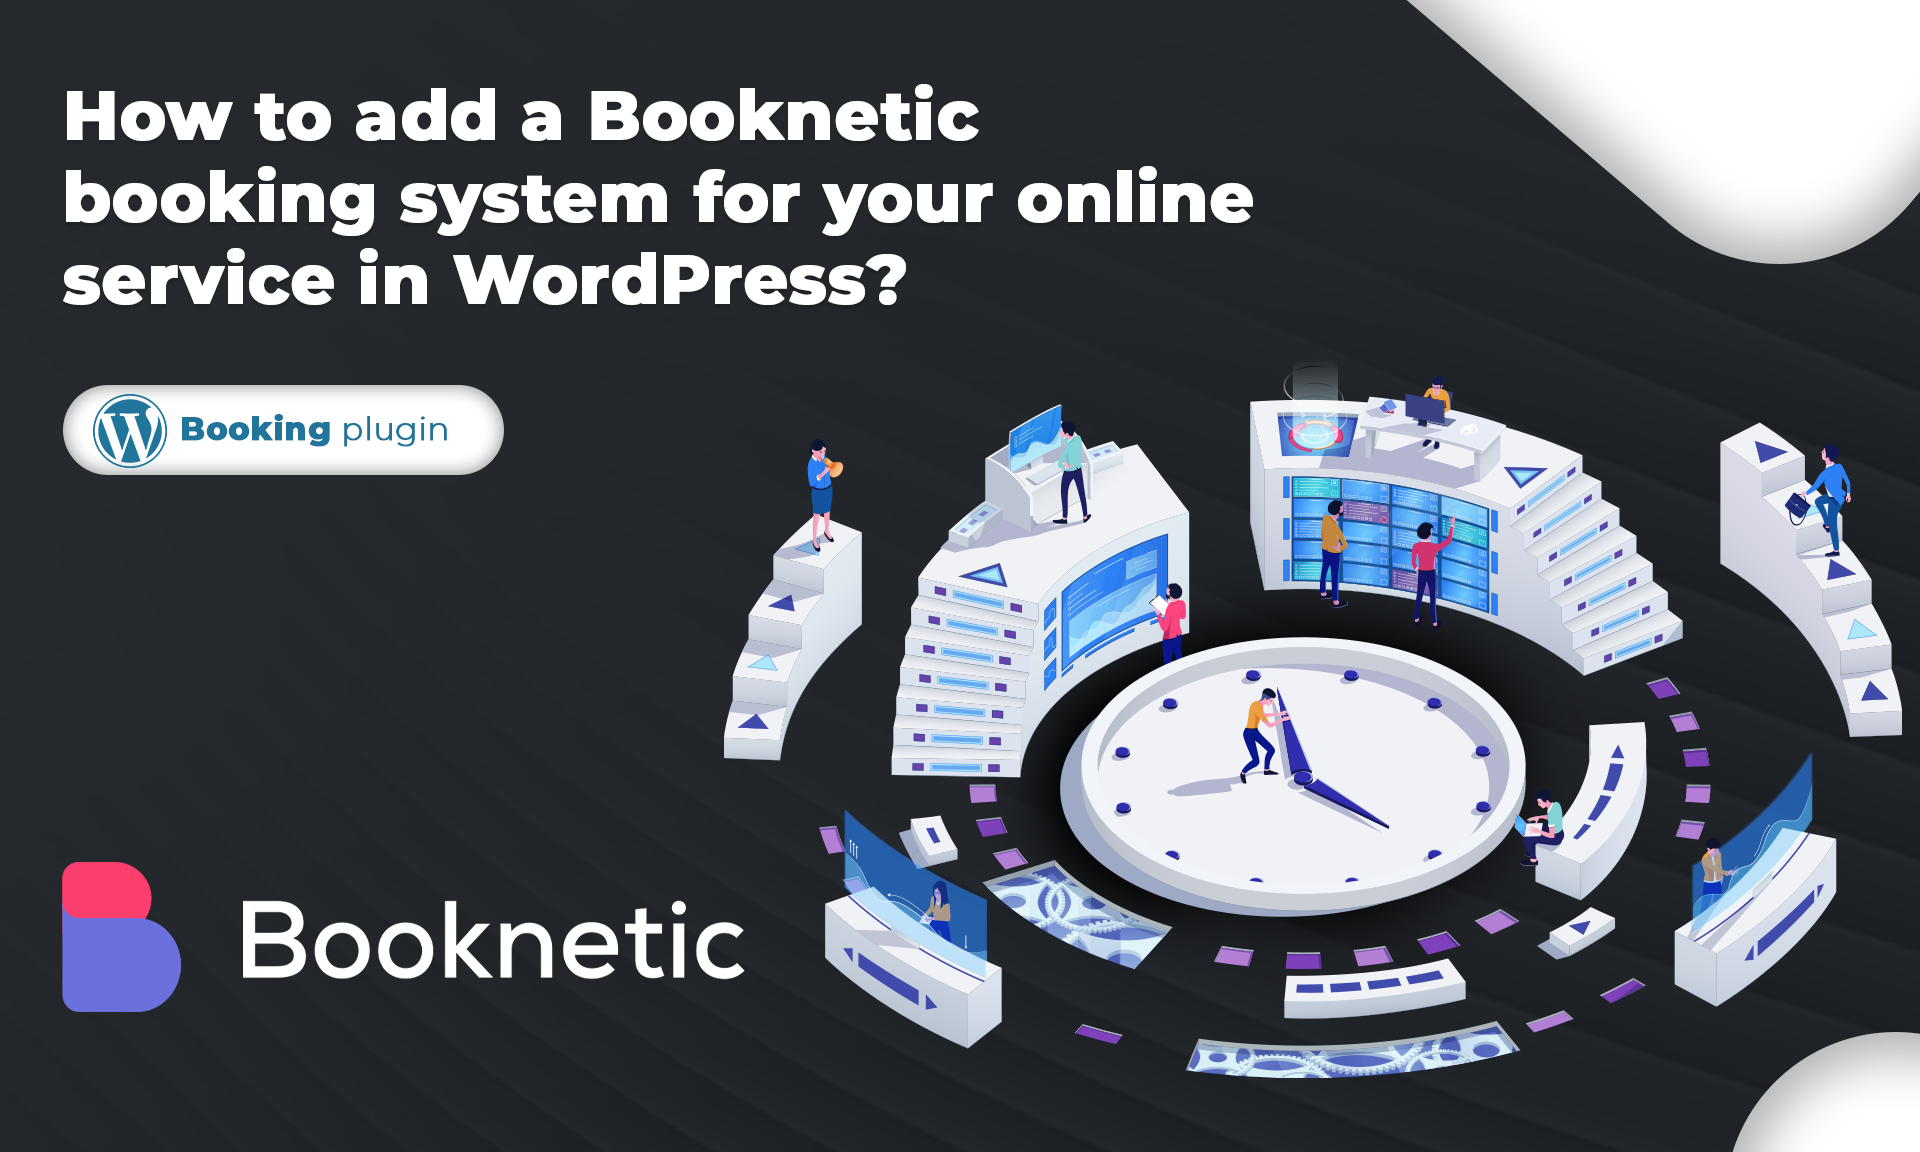 How to add a Booknetic booking system for your online service in WordPress?